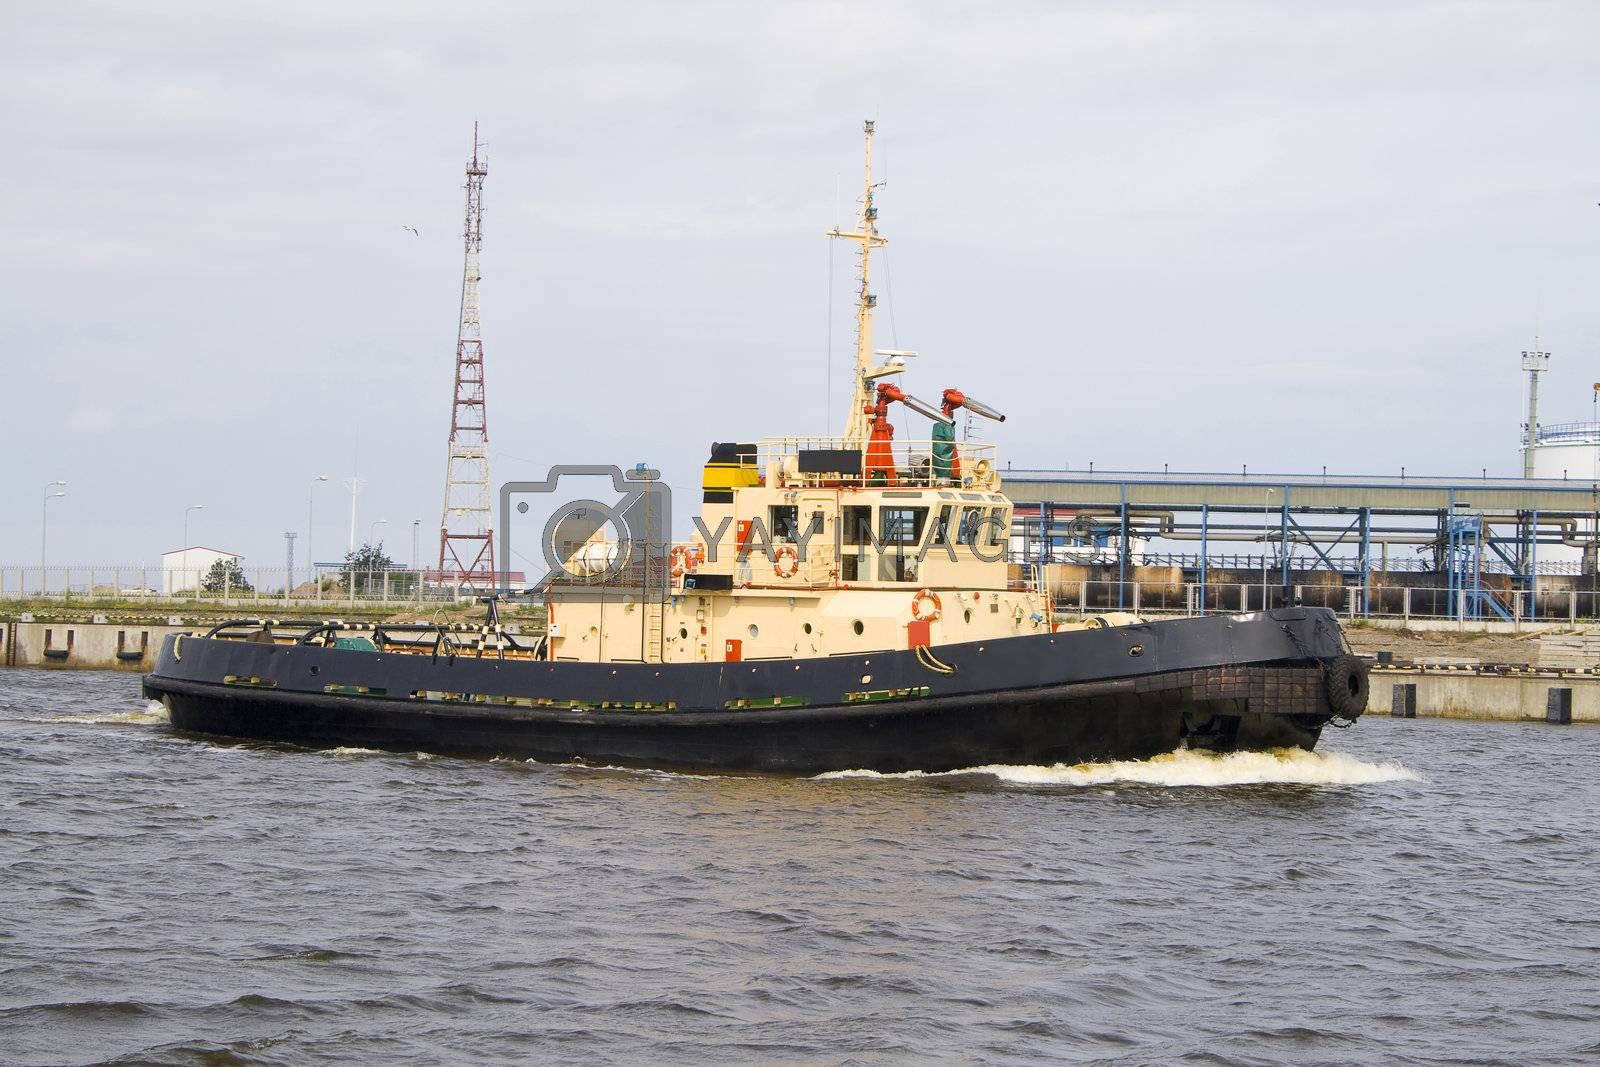 One of tugboats near the ferry terminal in the harbor in Ventspils, Latvia.